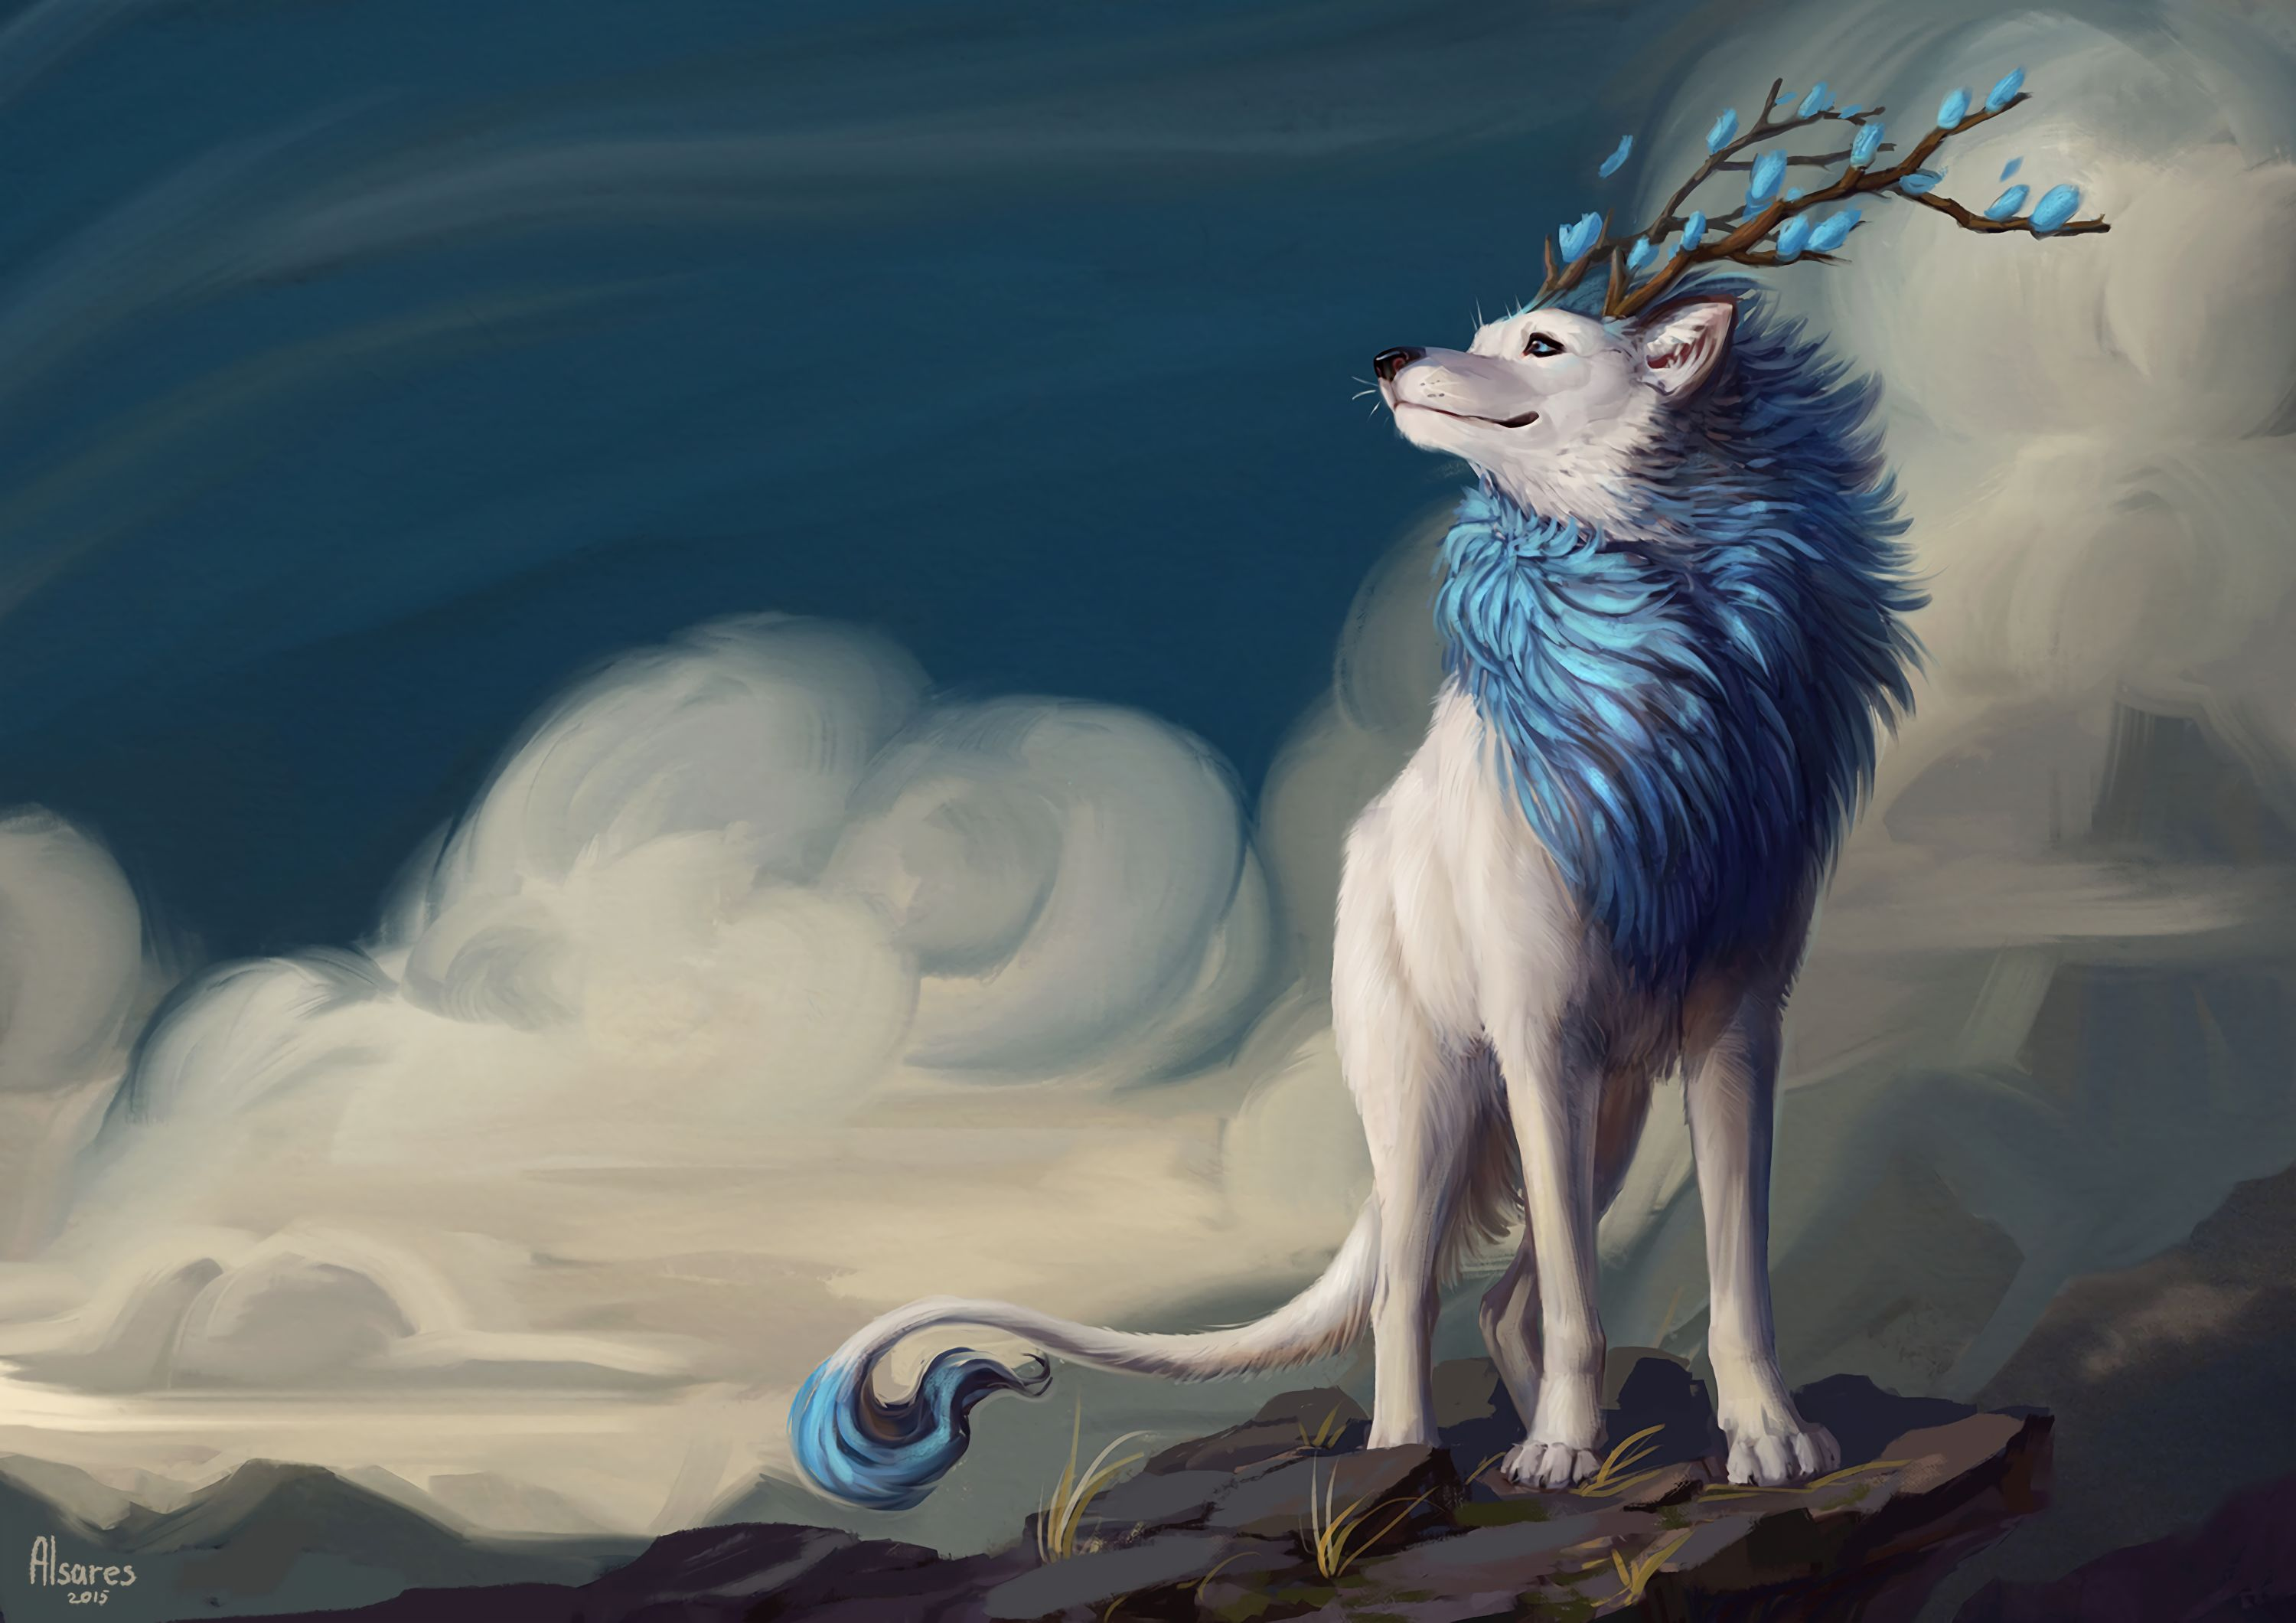 71727 download wallpaper Wolf, Art, Horns, Mane, Flowers screensavers and pictures for free